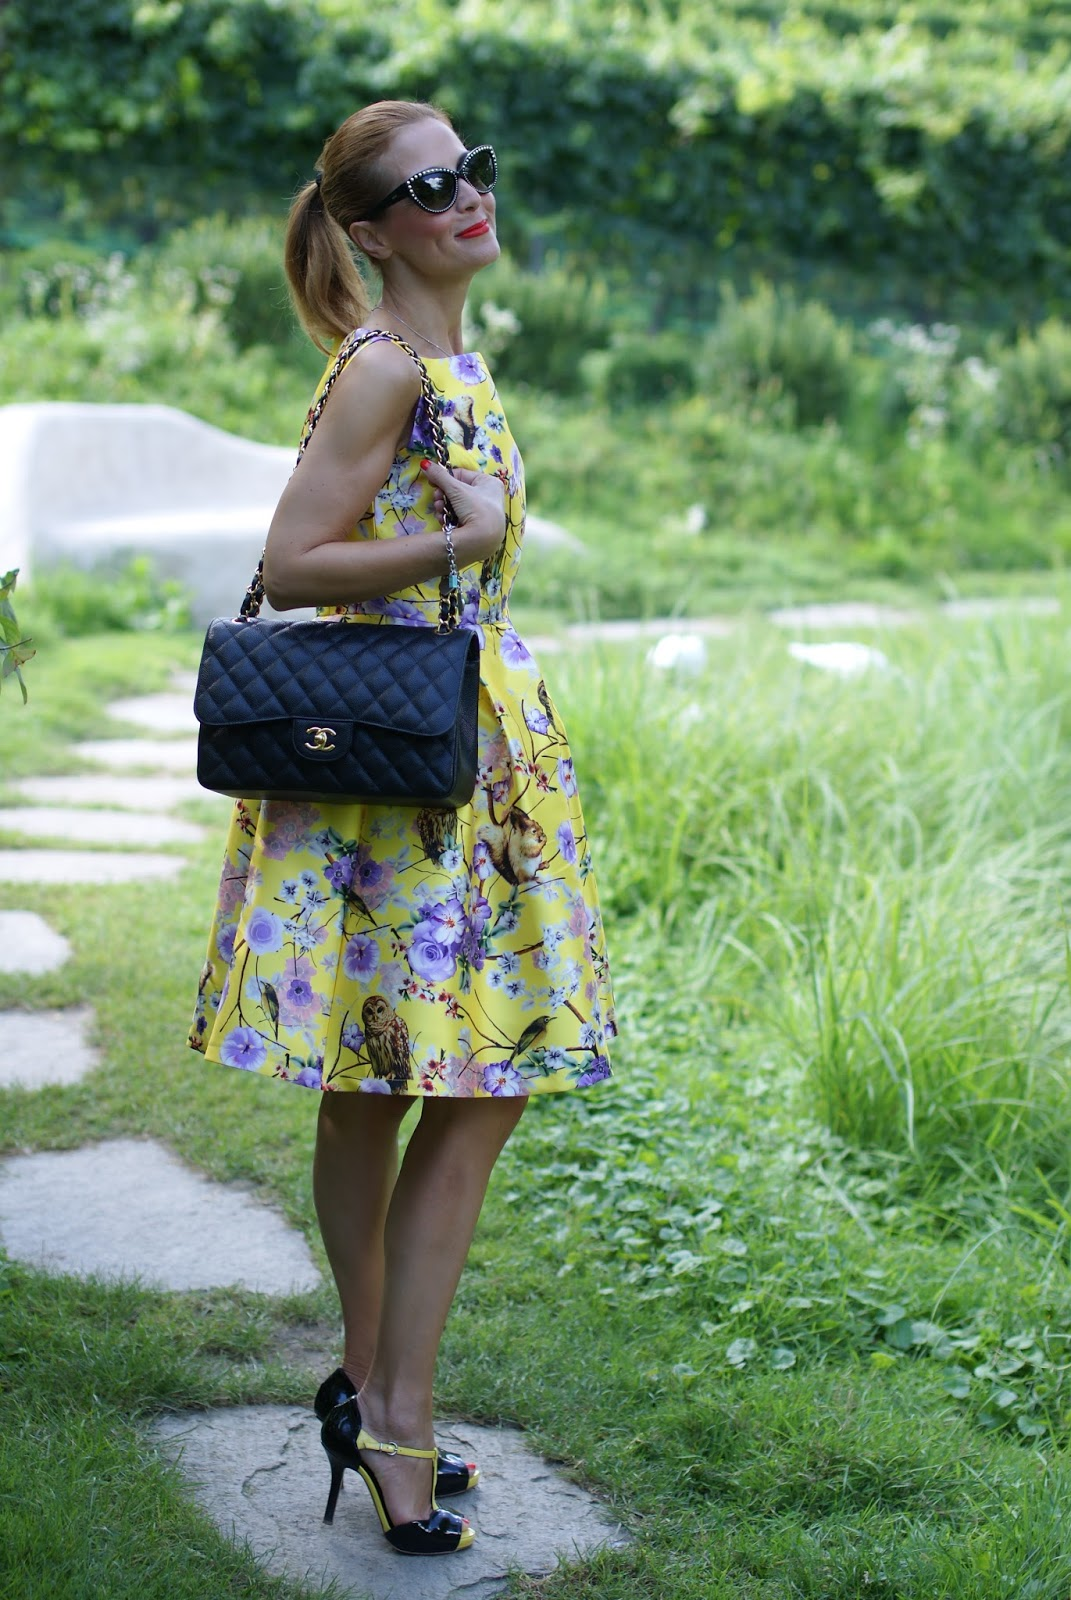 Zaful floral and owls print dress with Chanel classic flap bag and Sergio Levantesi heels and fashionable ducks on Fashion and Cookies fashion blog